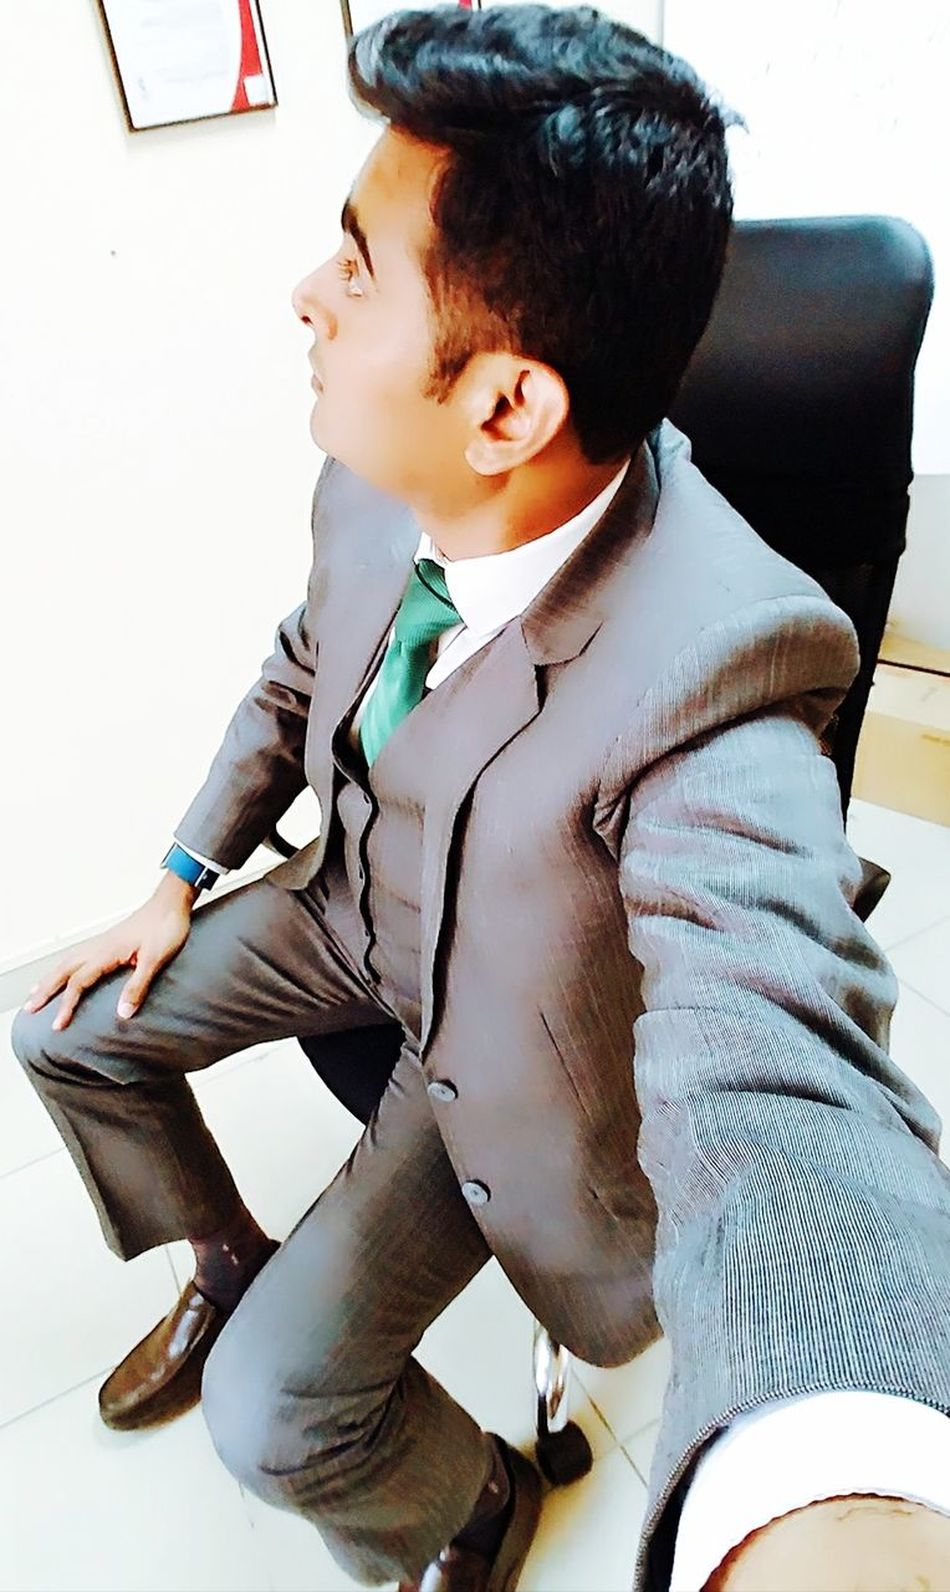 Business Black Hair Businesswear Adult Check This Out Lifestyles Its Me Man Karachi Cool Pakistan Hi Hello World ThatsMe Well-dressed Confidence  Business Person HERO That's Me Today's Hot Look Adults Only Men People Portrait Adult